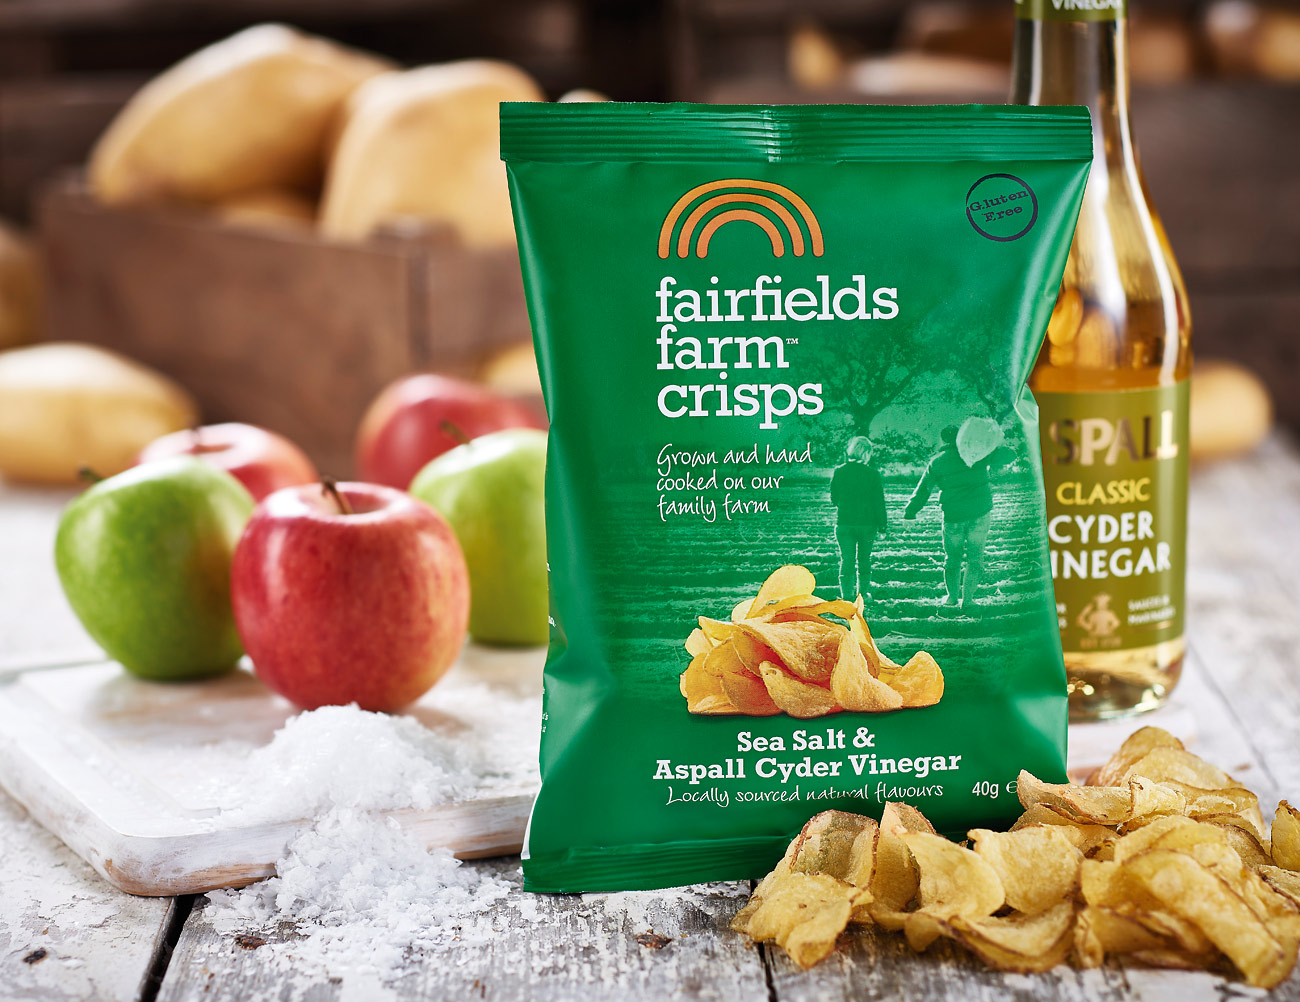 Fairfields Farm Crisps food product photoshoot